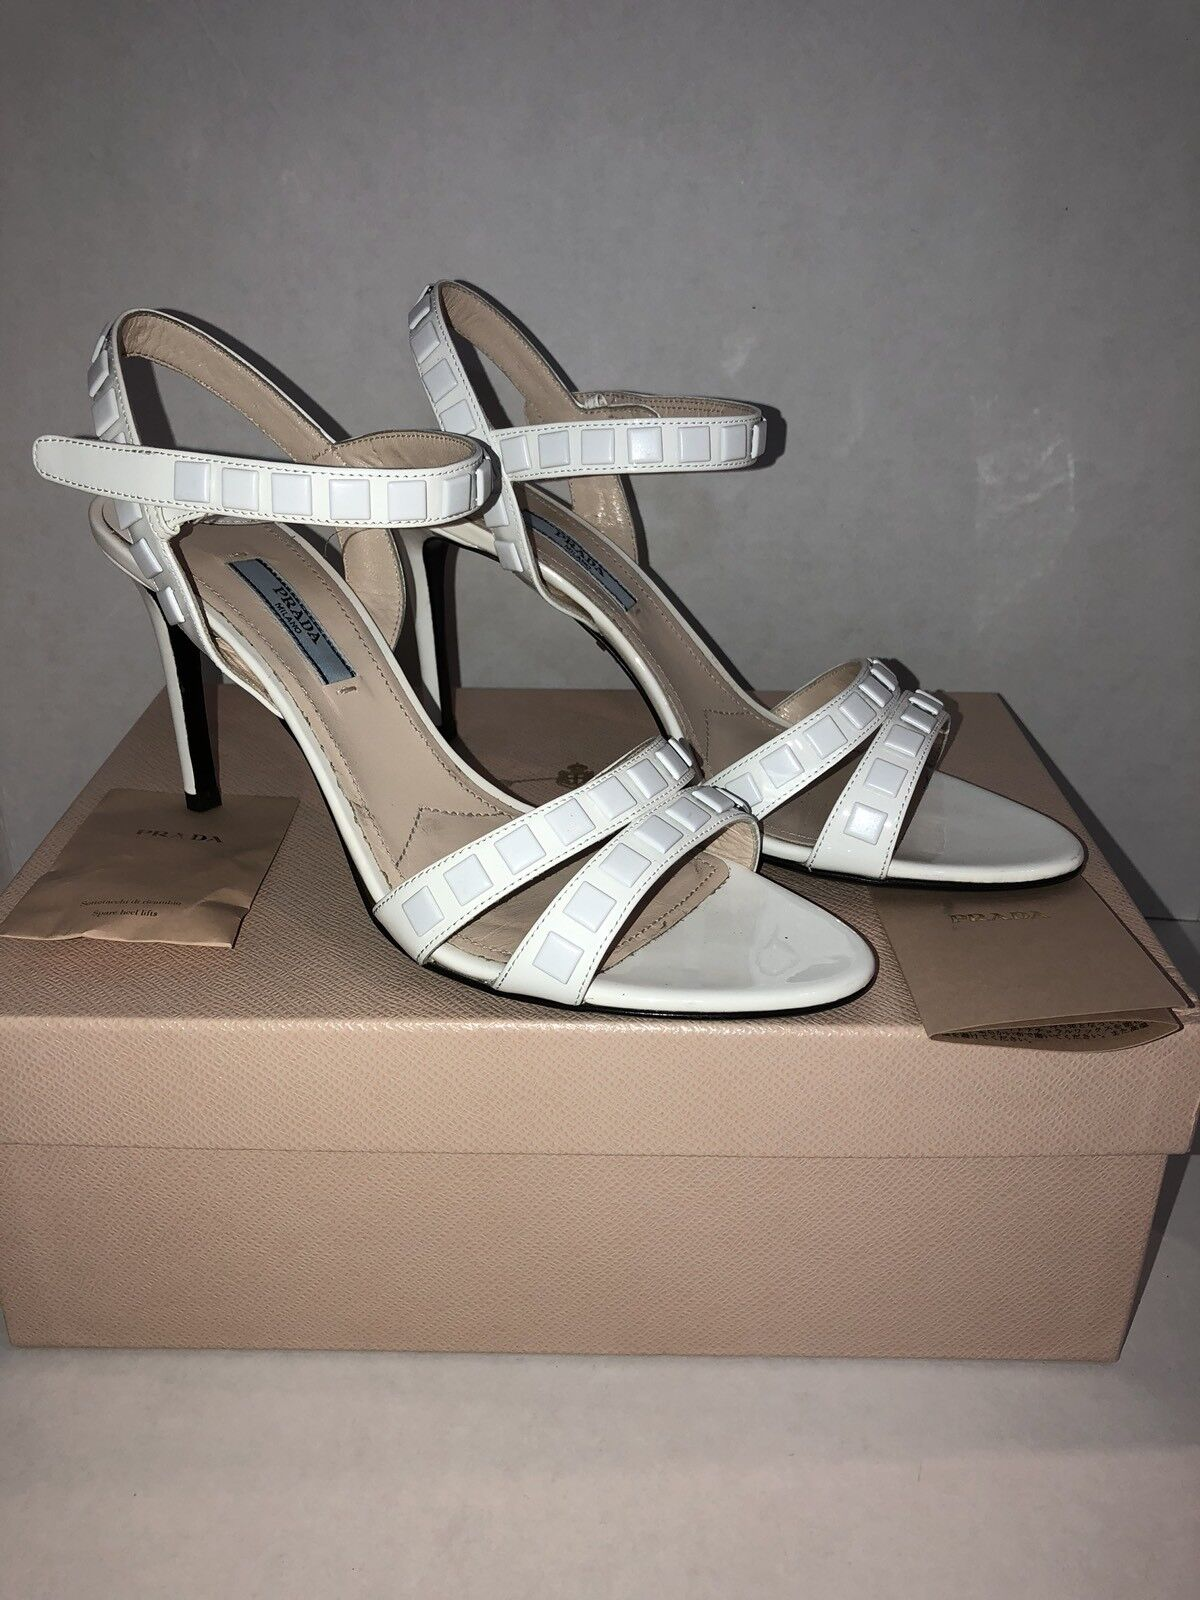 PRADA AUTHENTIC SHOES SANDALS HIGH HEELS WHITE WHITE WHITE NWB MADE IN ITALY bf826d